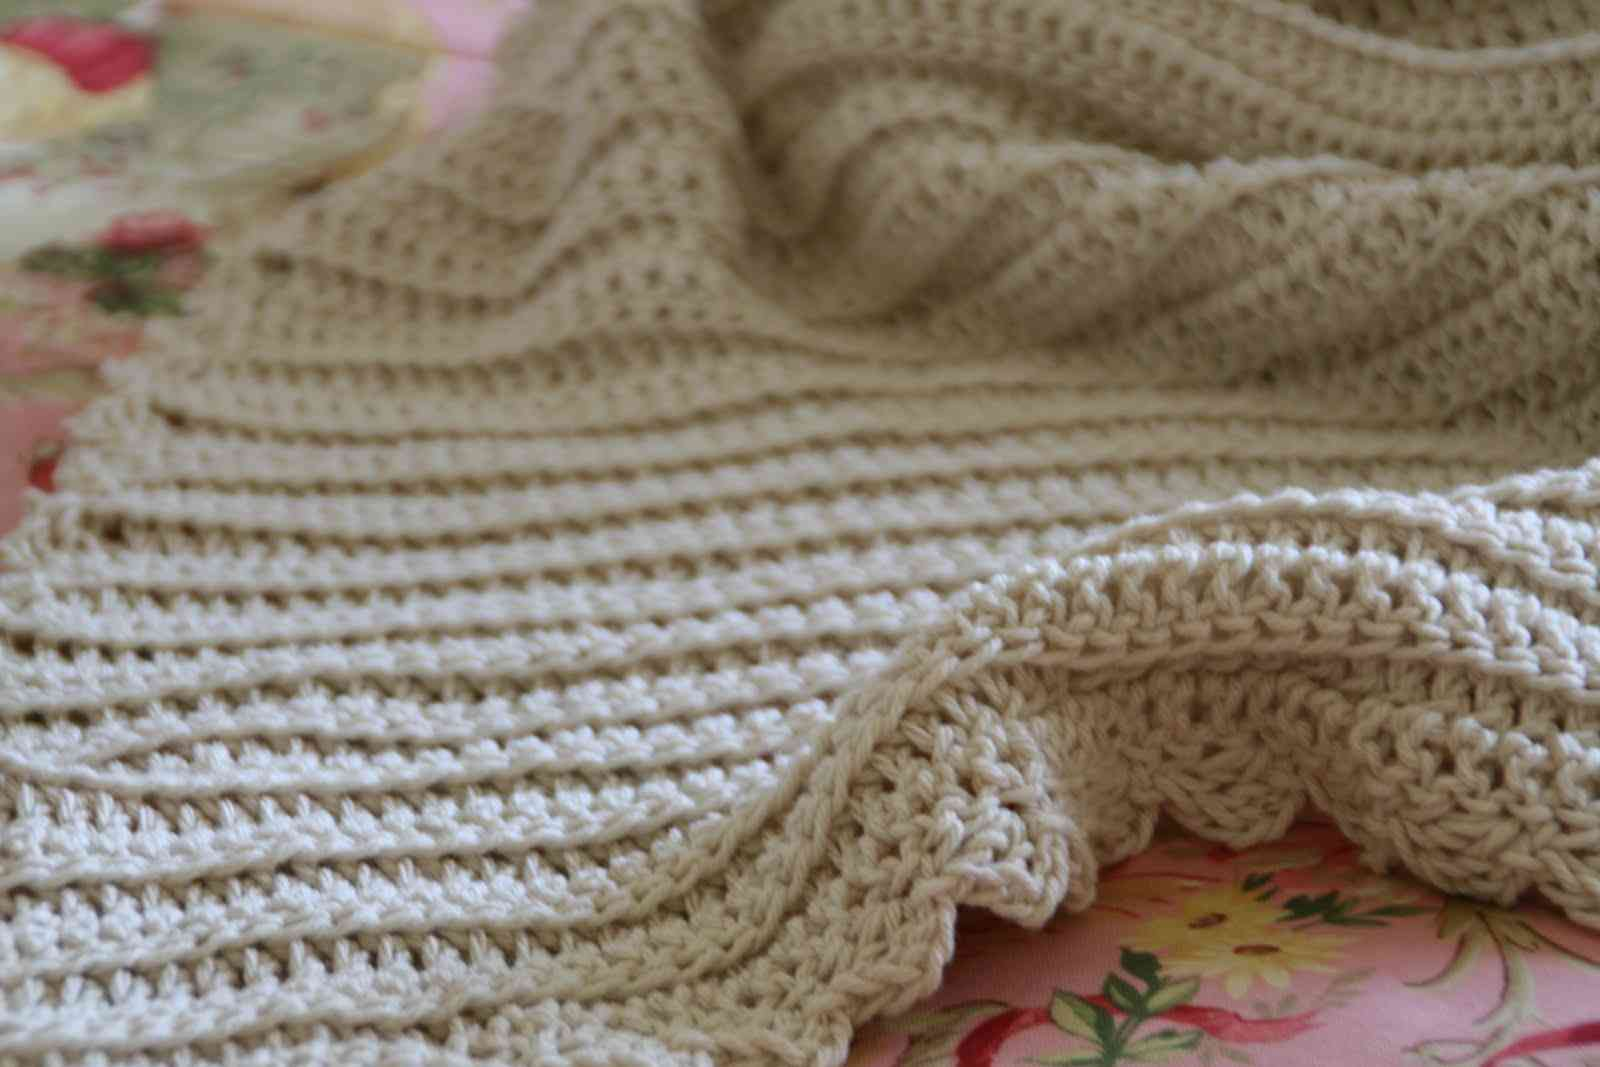 crochet baby blanket 400x266 15 Most Popular Free Crochet Baby Blanket ...